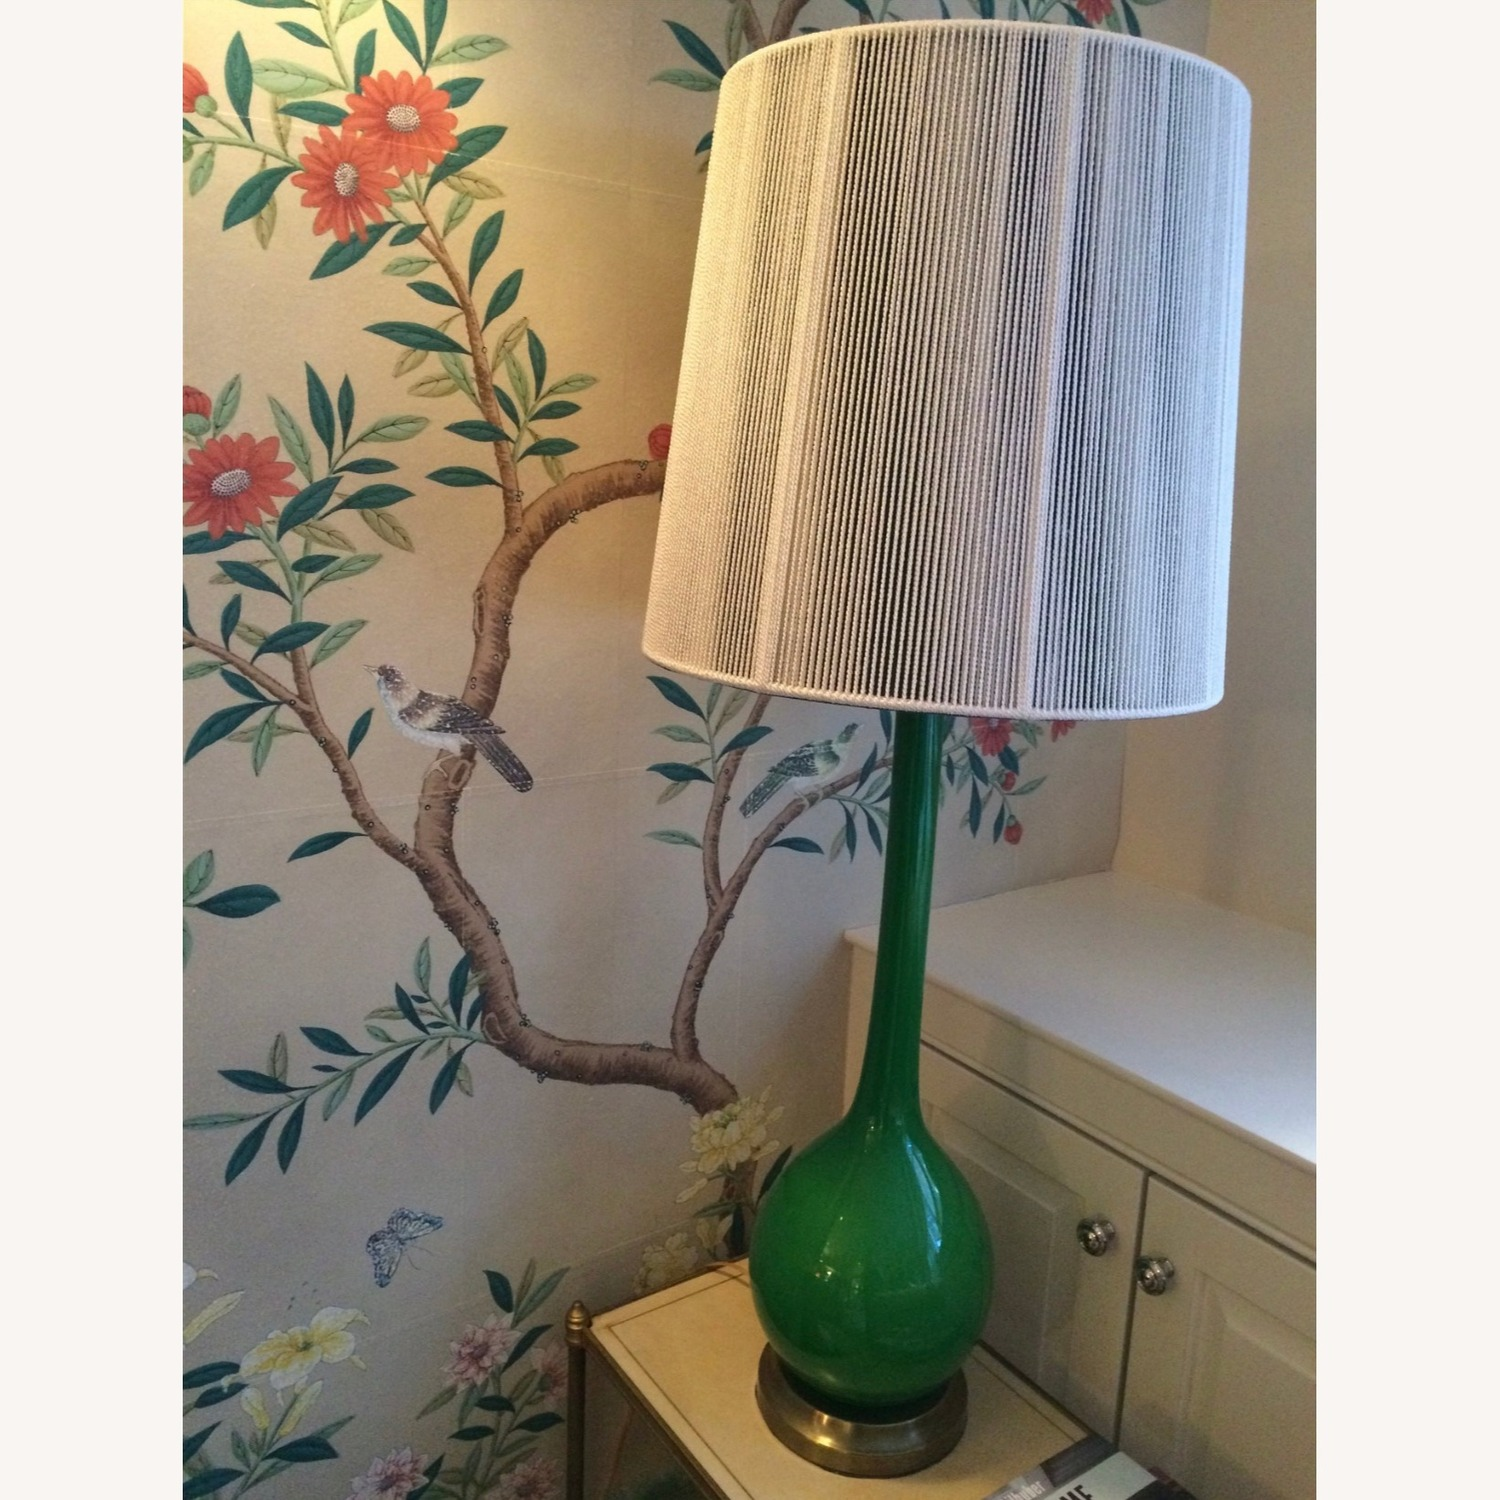 Pair of 1960s Green Glass Venetian Lamps with Custom Shades - image-2